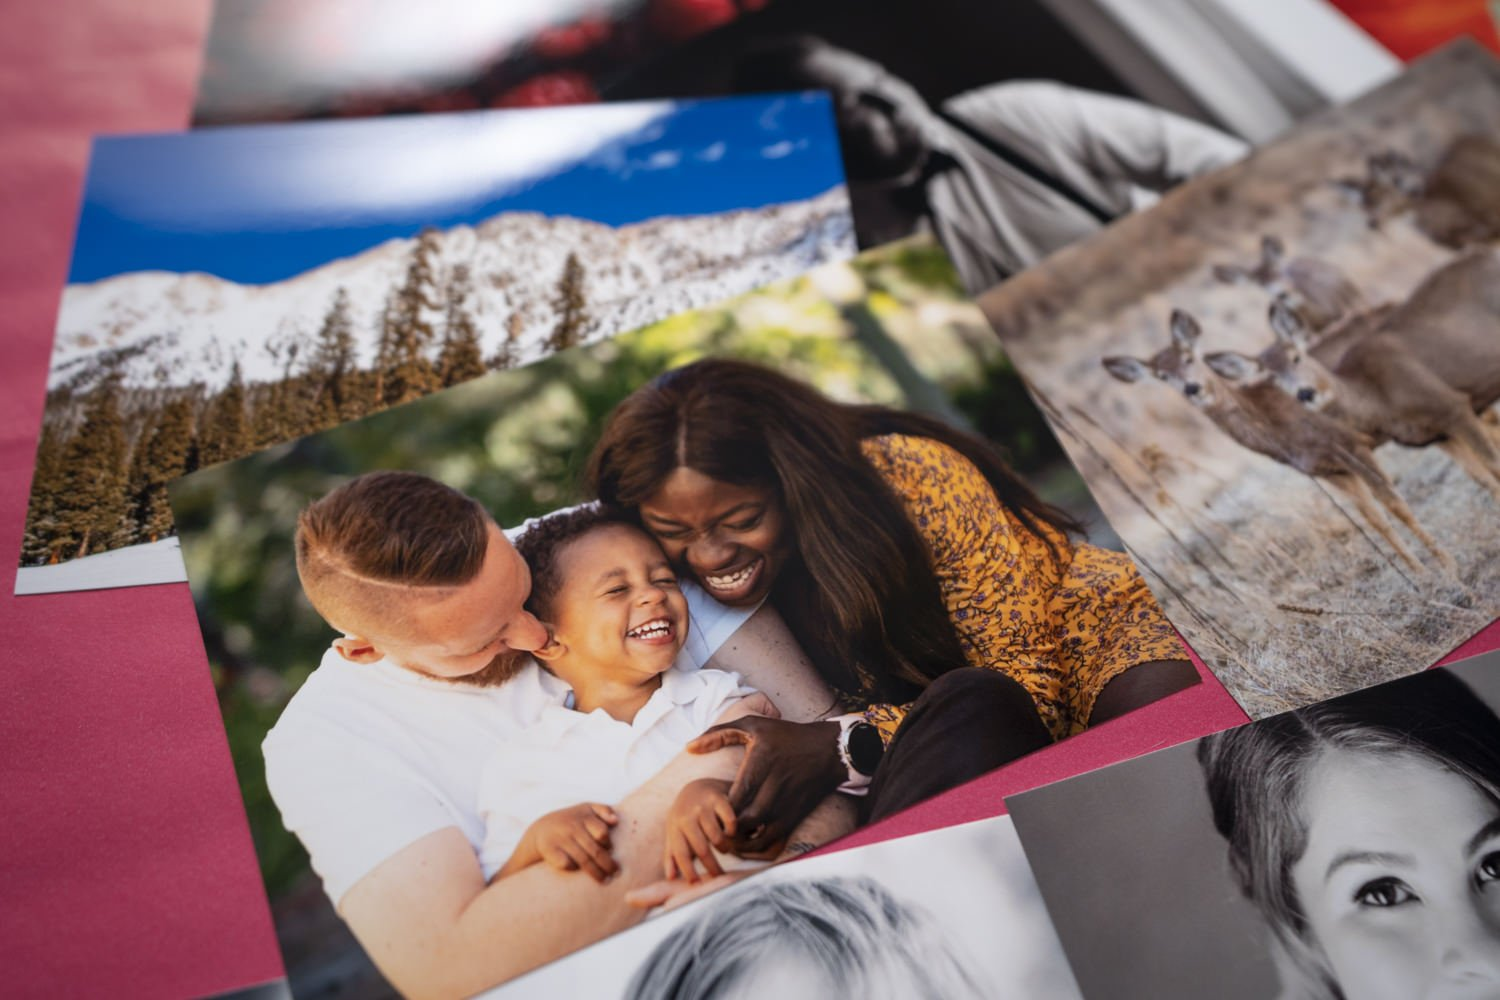 A bunch of photos printed at Harvey Norman